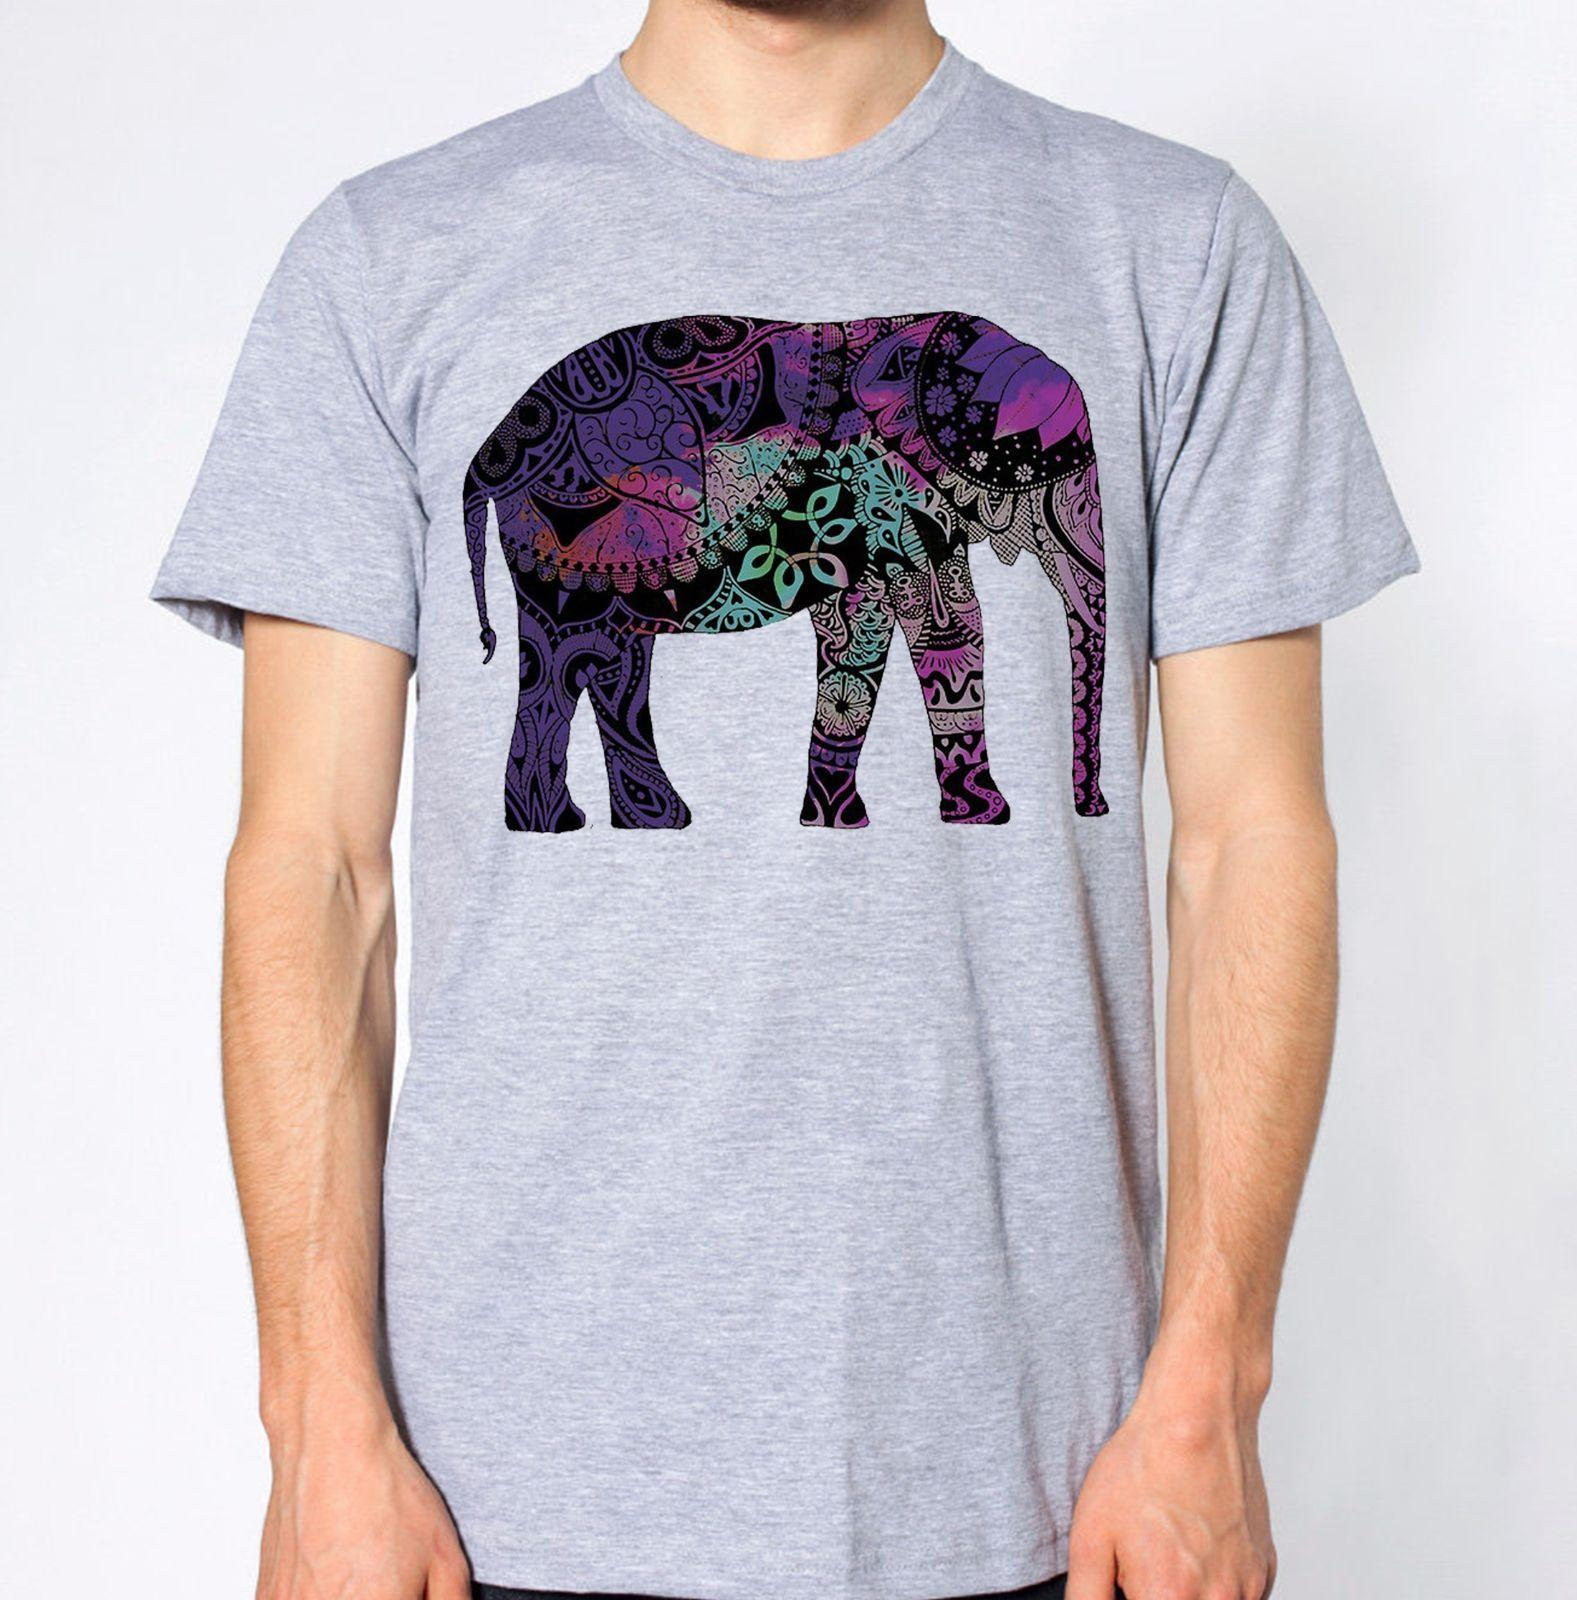 c22b7211 Elephant New T Shirt Animal Lover Top Abstract Tee Graphic Design Tees  Custom Jersey Brand Shirts Jeans Print T Shirt Shop Design Crazy T Shirts  Online From ...